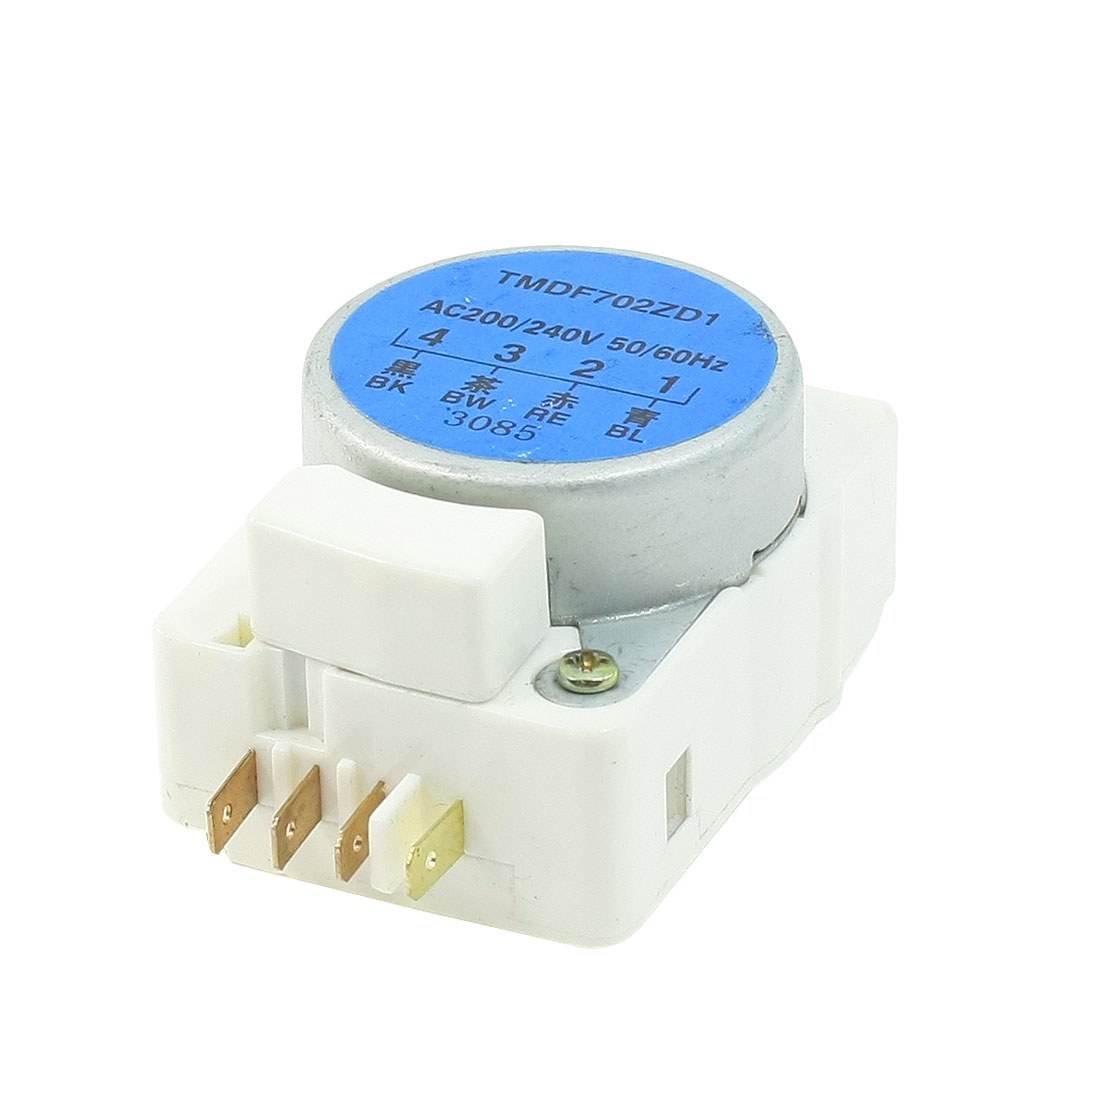 Marked 4 Pins Refrigerator Defrost Timerontrol AC 200/240V 50/60Hz